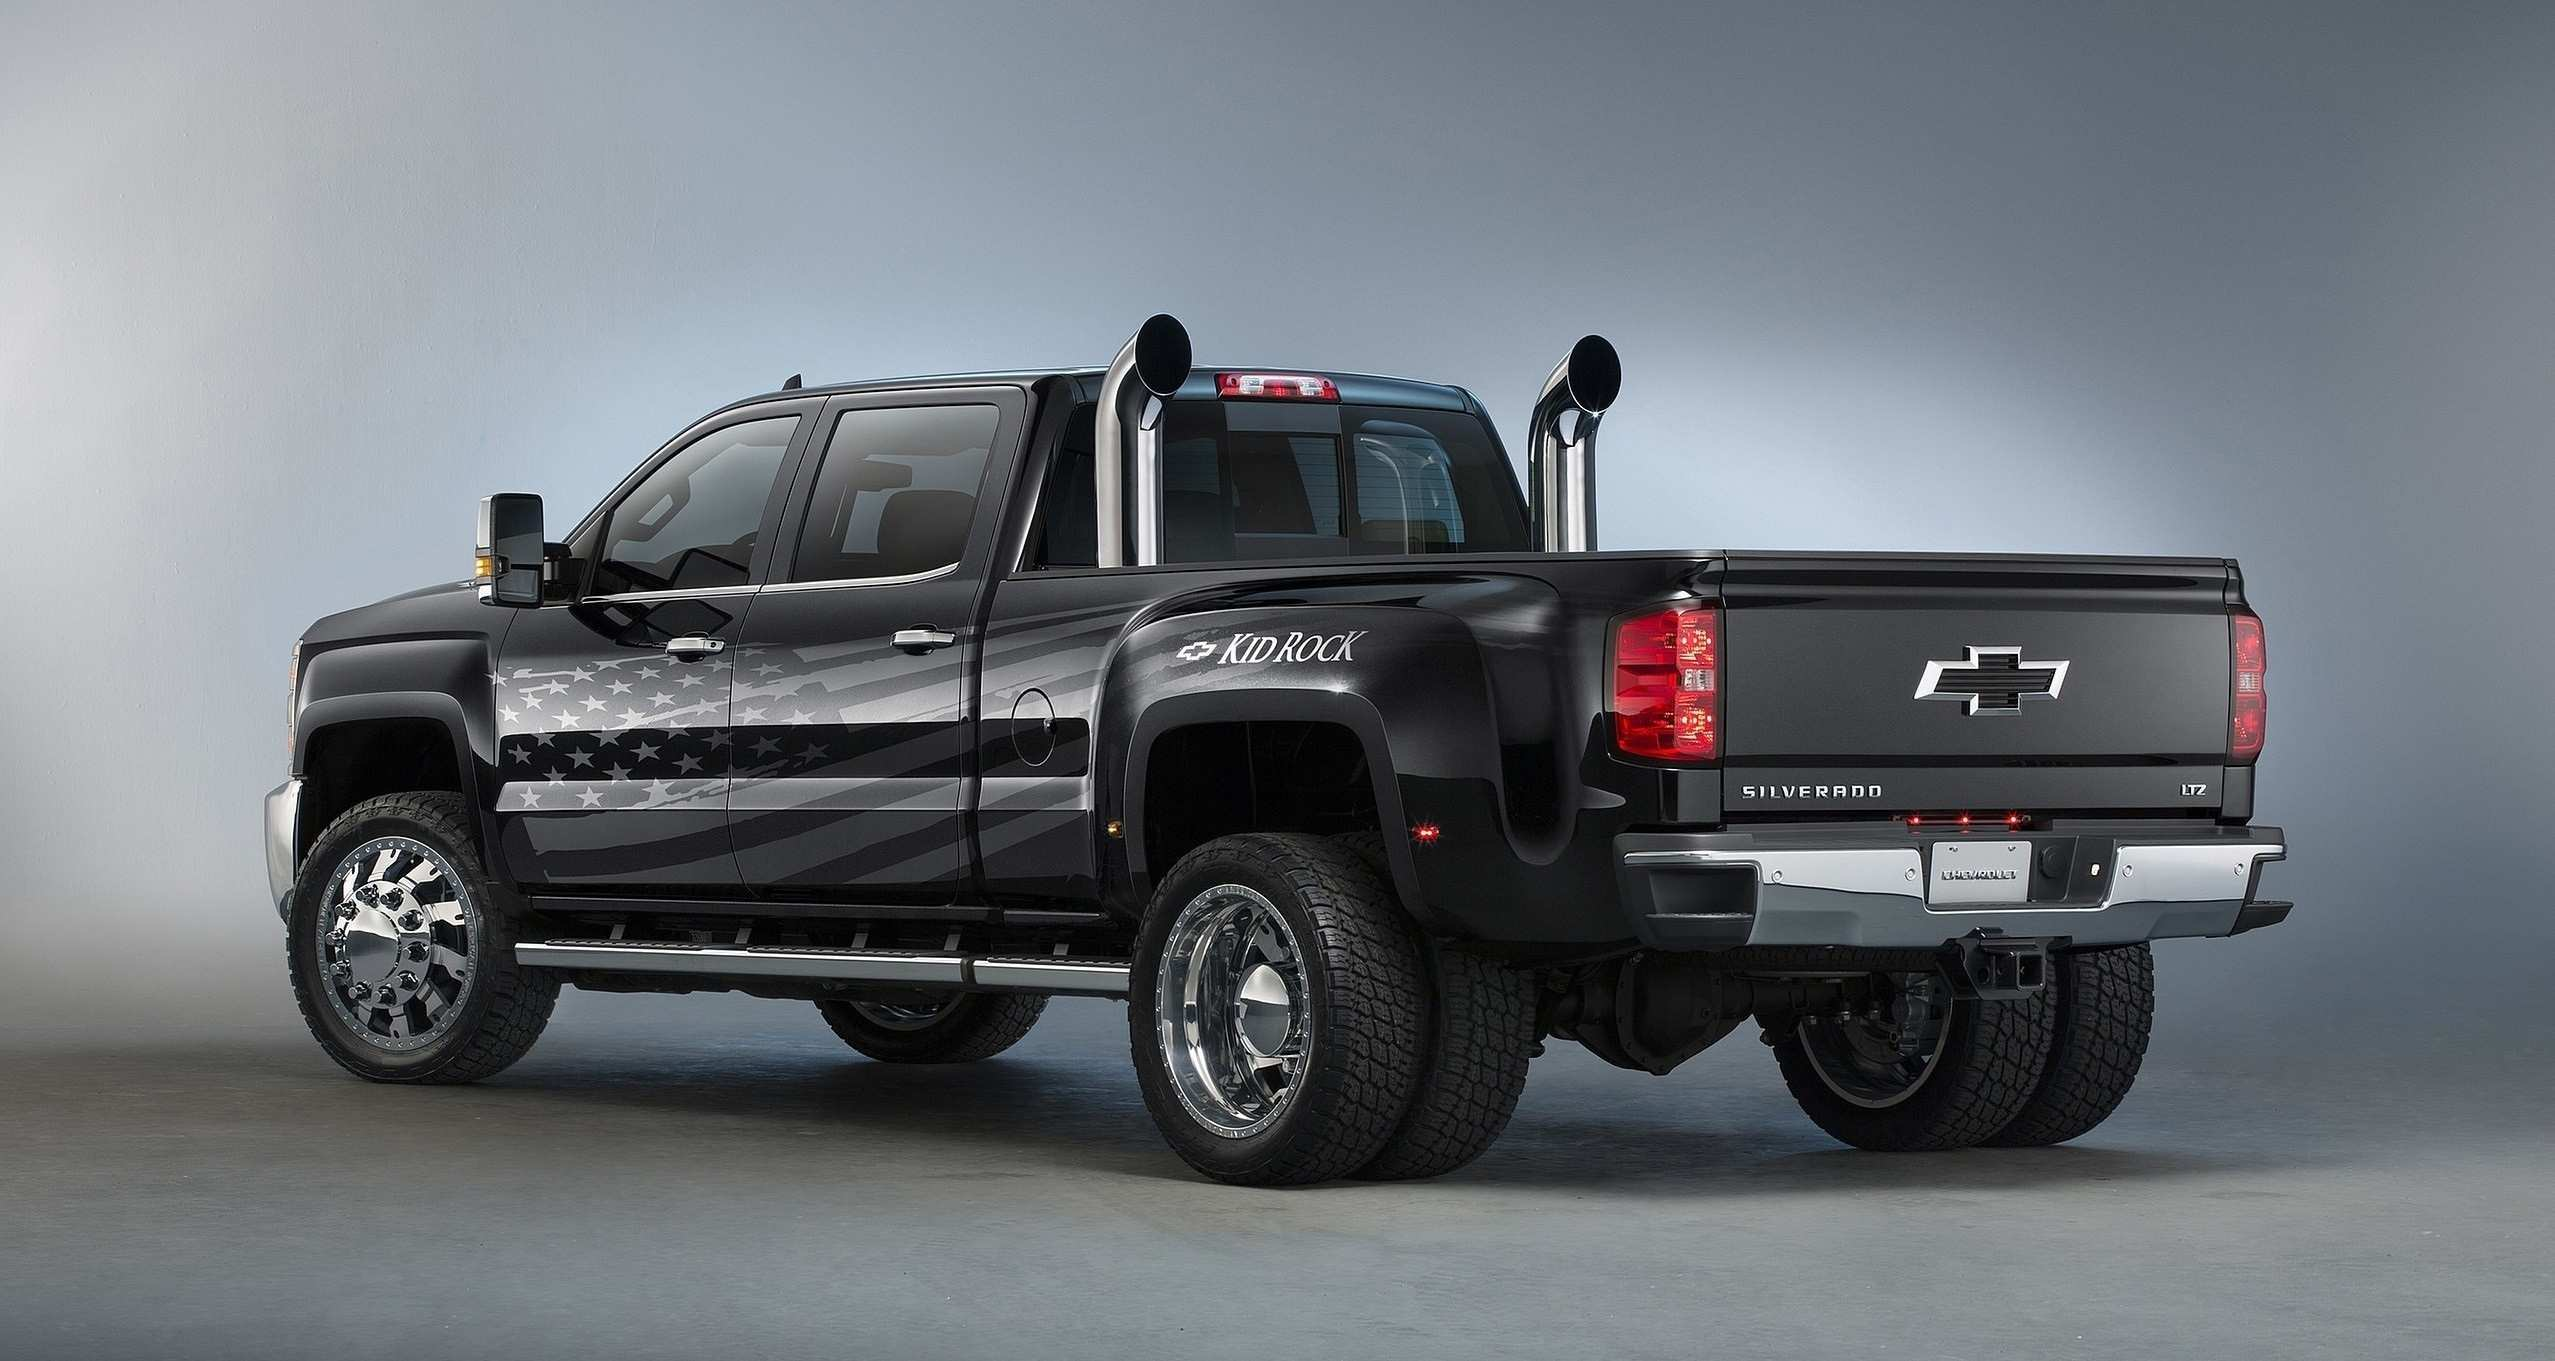 40 All New 2019 Chevy Duramax Price Design And Review